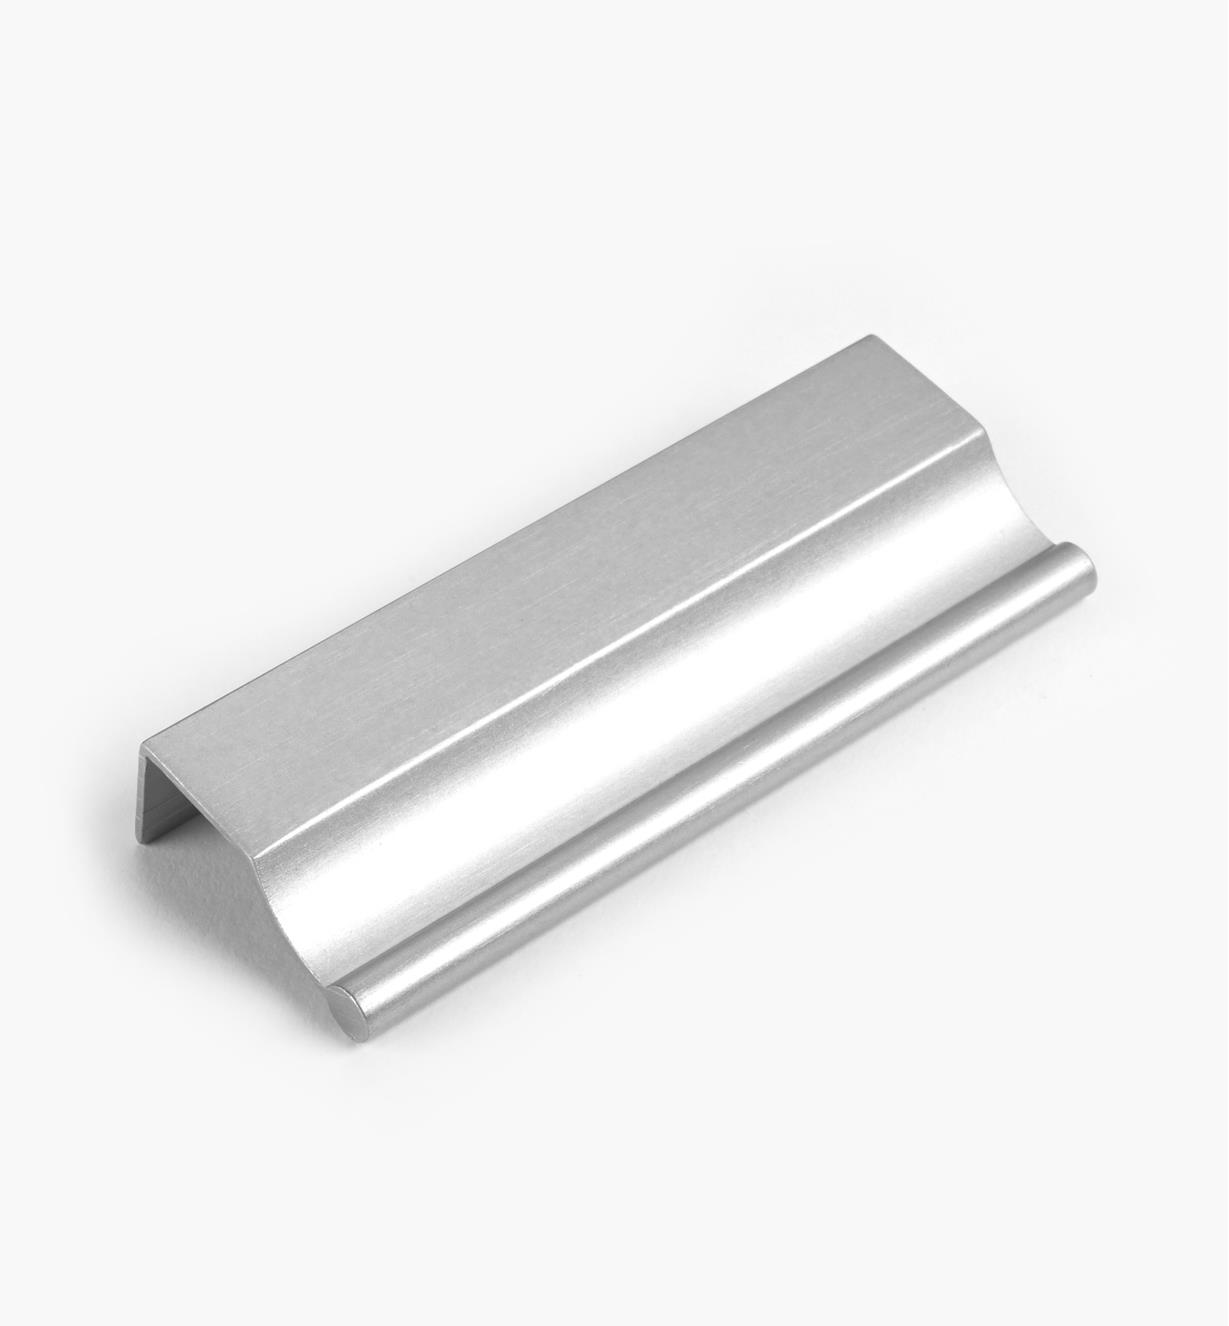 02W3945 - 96mm x 125mm Palladium Flap Pull